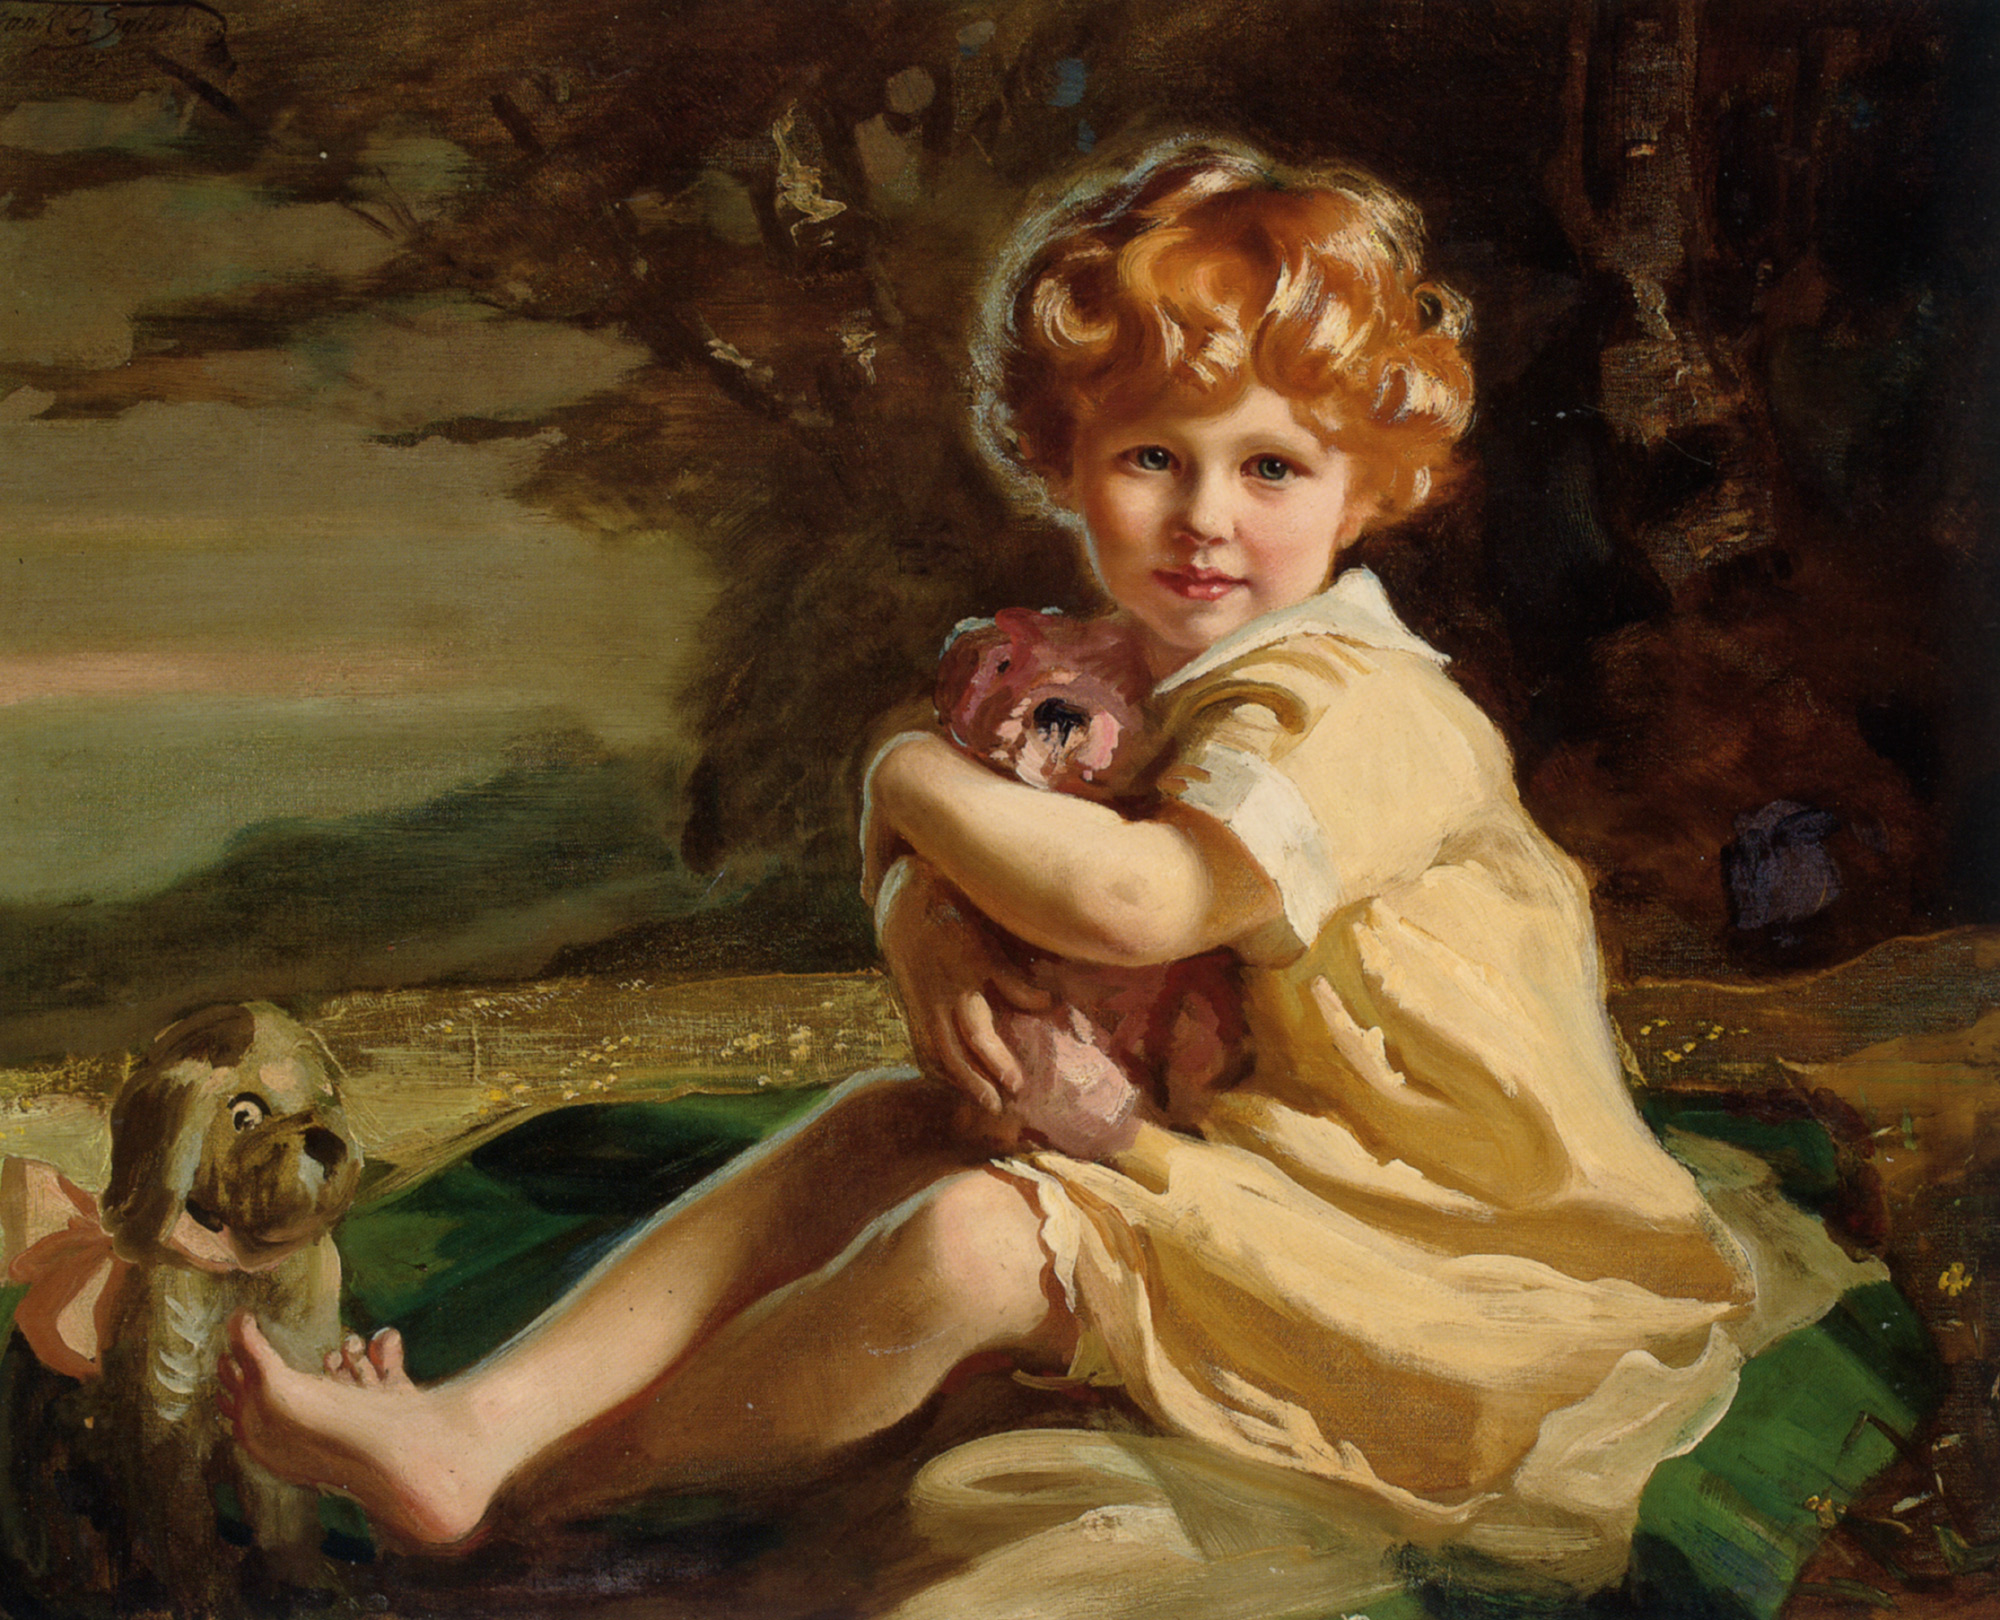 Portrait of Sarah Fenton King as a Little Girl :: Frank O. Salisbury  - Portraits of young girls in art and painting ôîòî